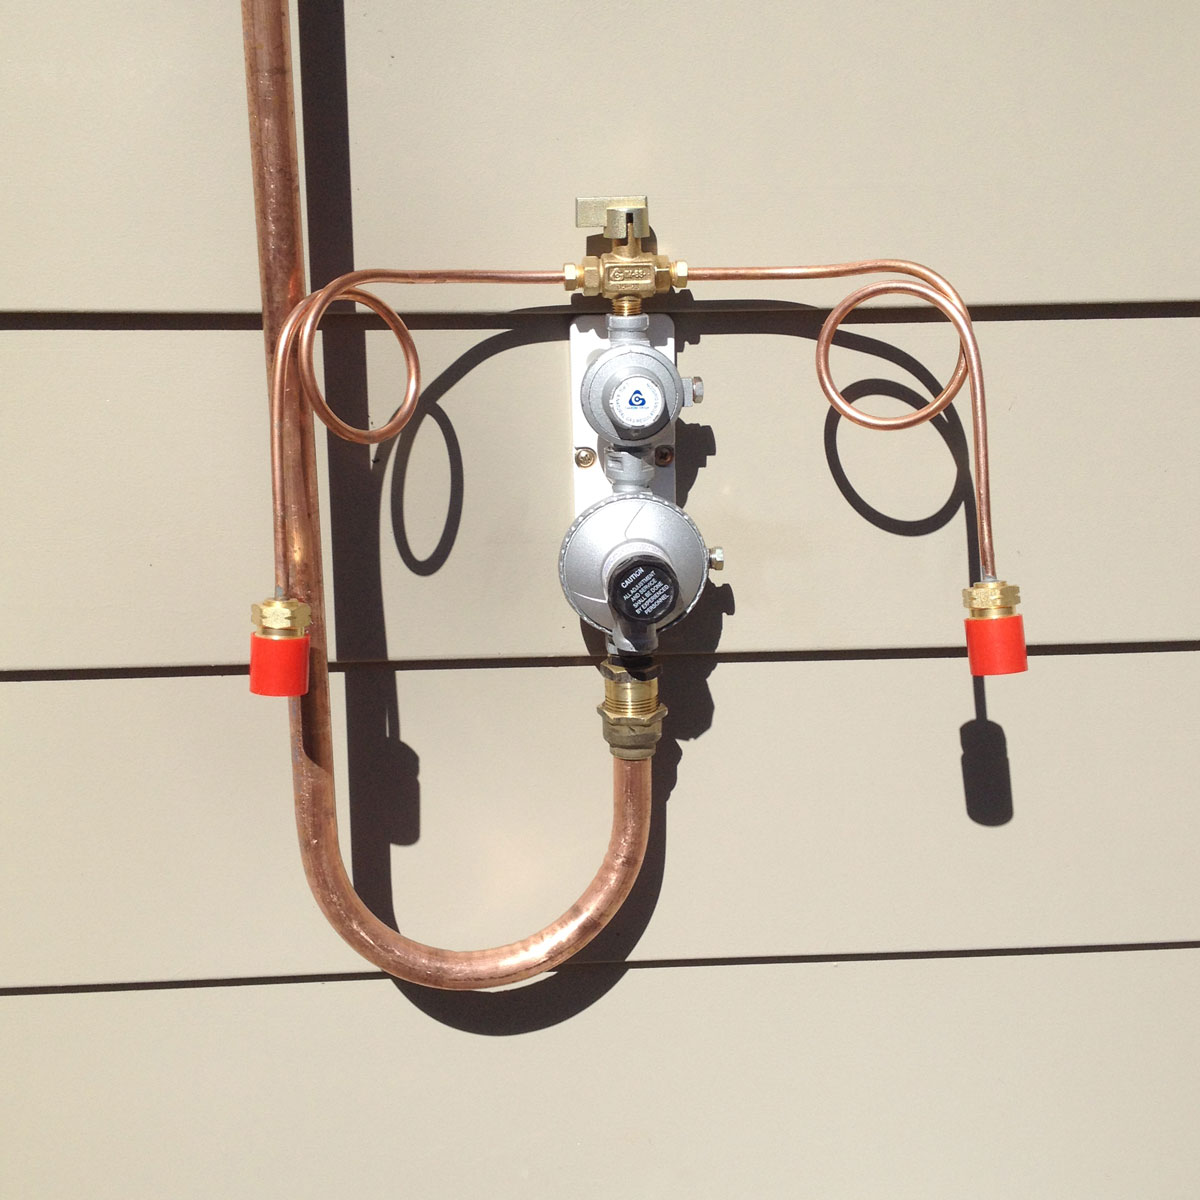 LPG Gas Regulator - Gap Trade Services